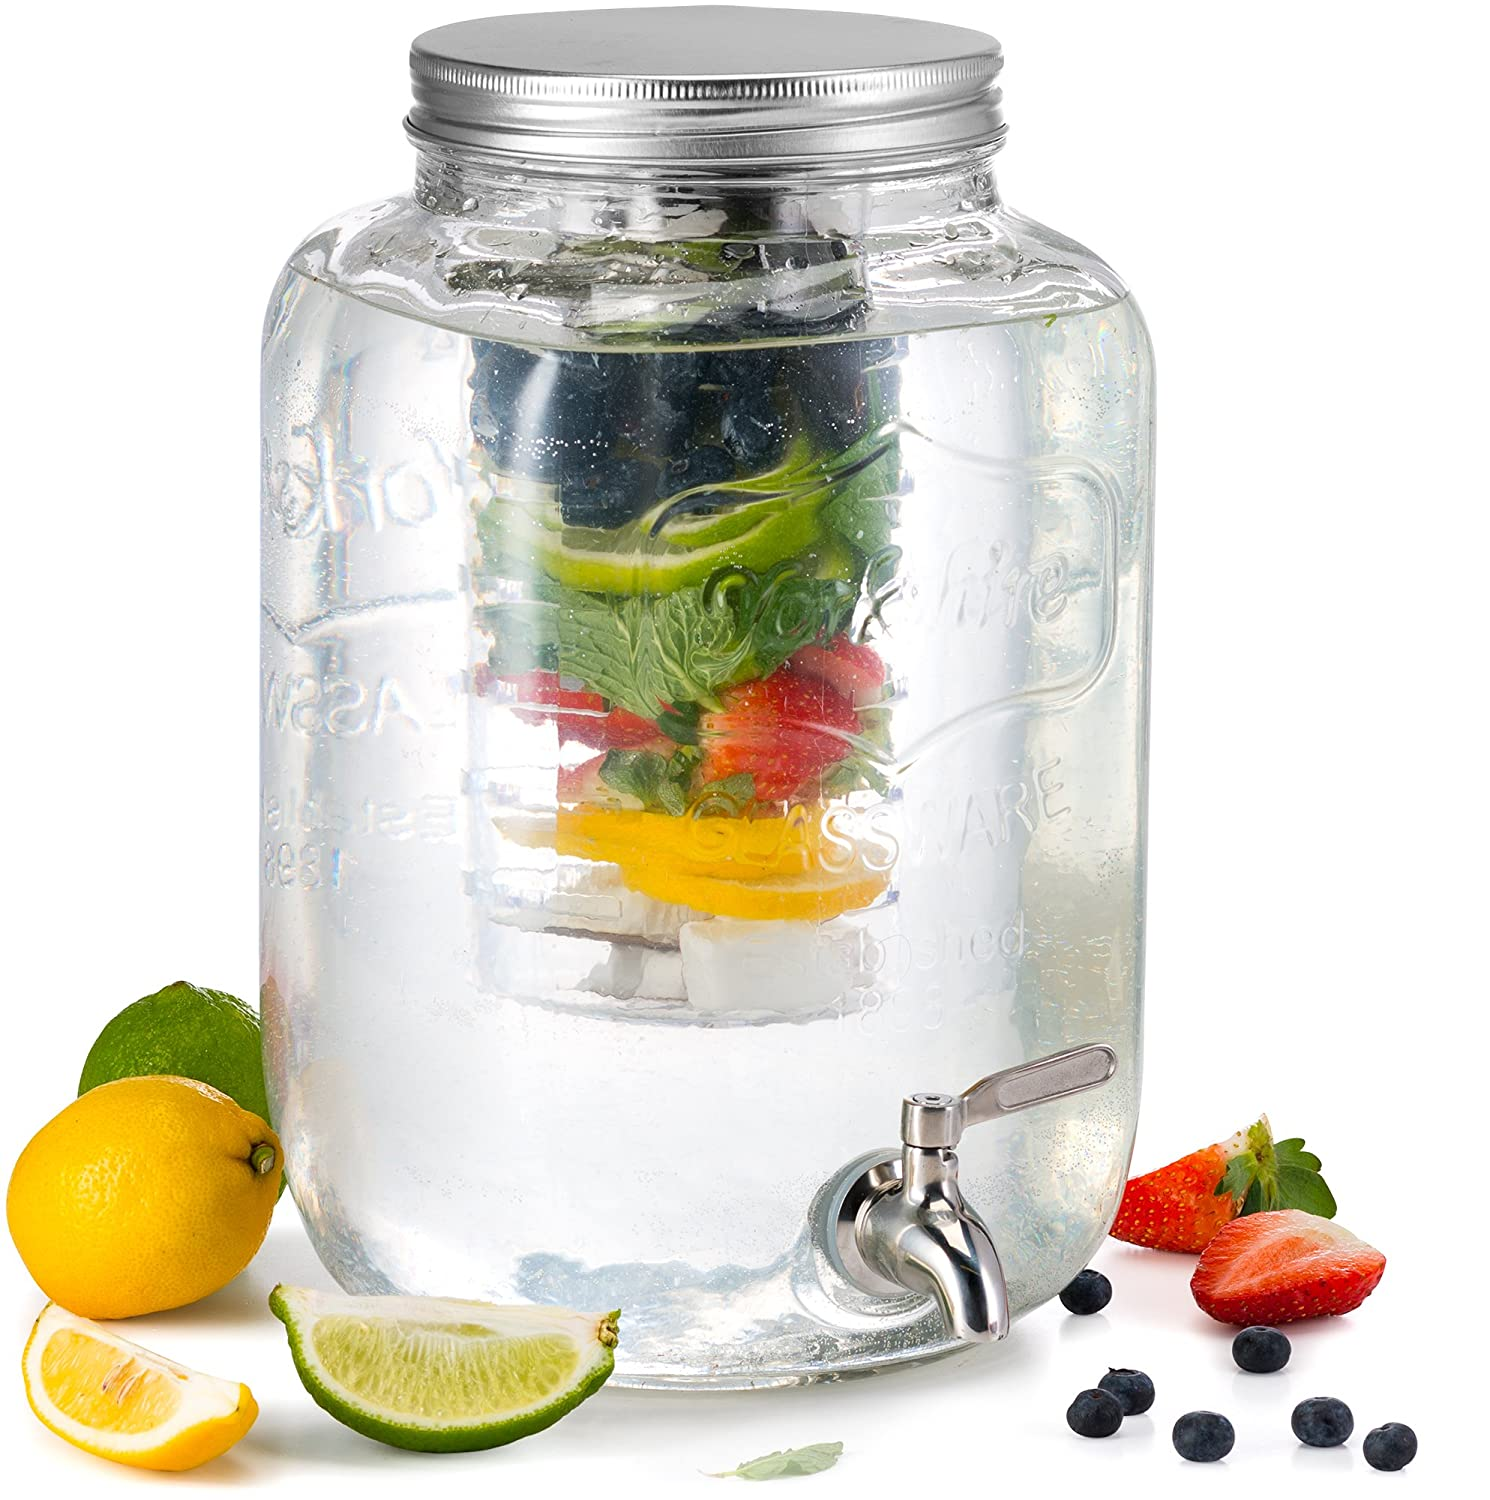 KooK Glass Drink Dispenser with Fruit & Ice Infuser and Stainless Steel Spigot, 2 Gallon 9060